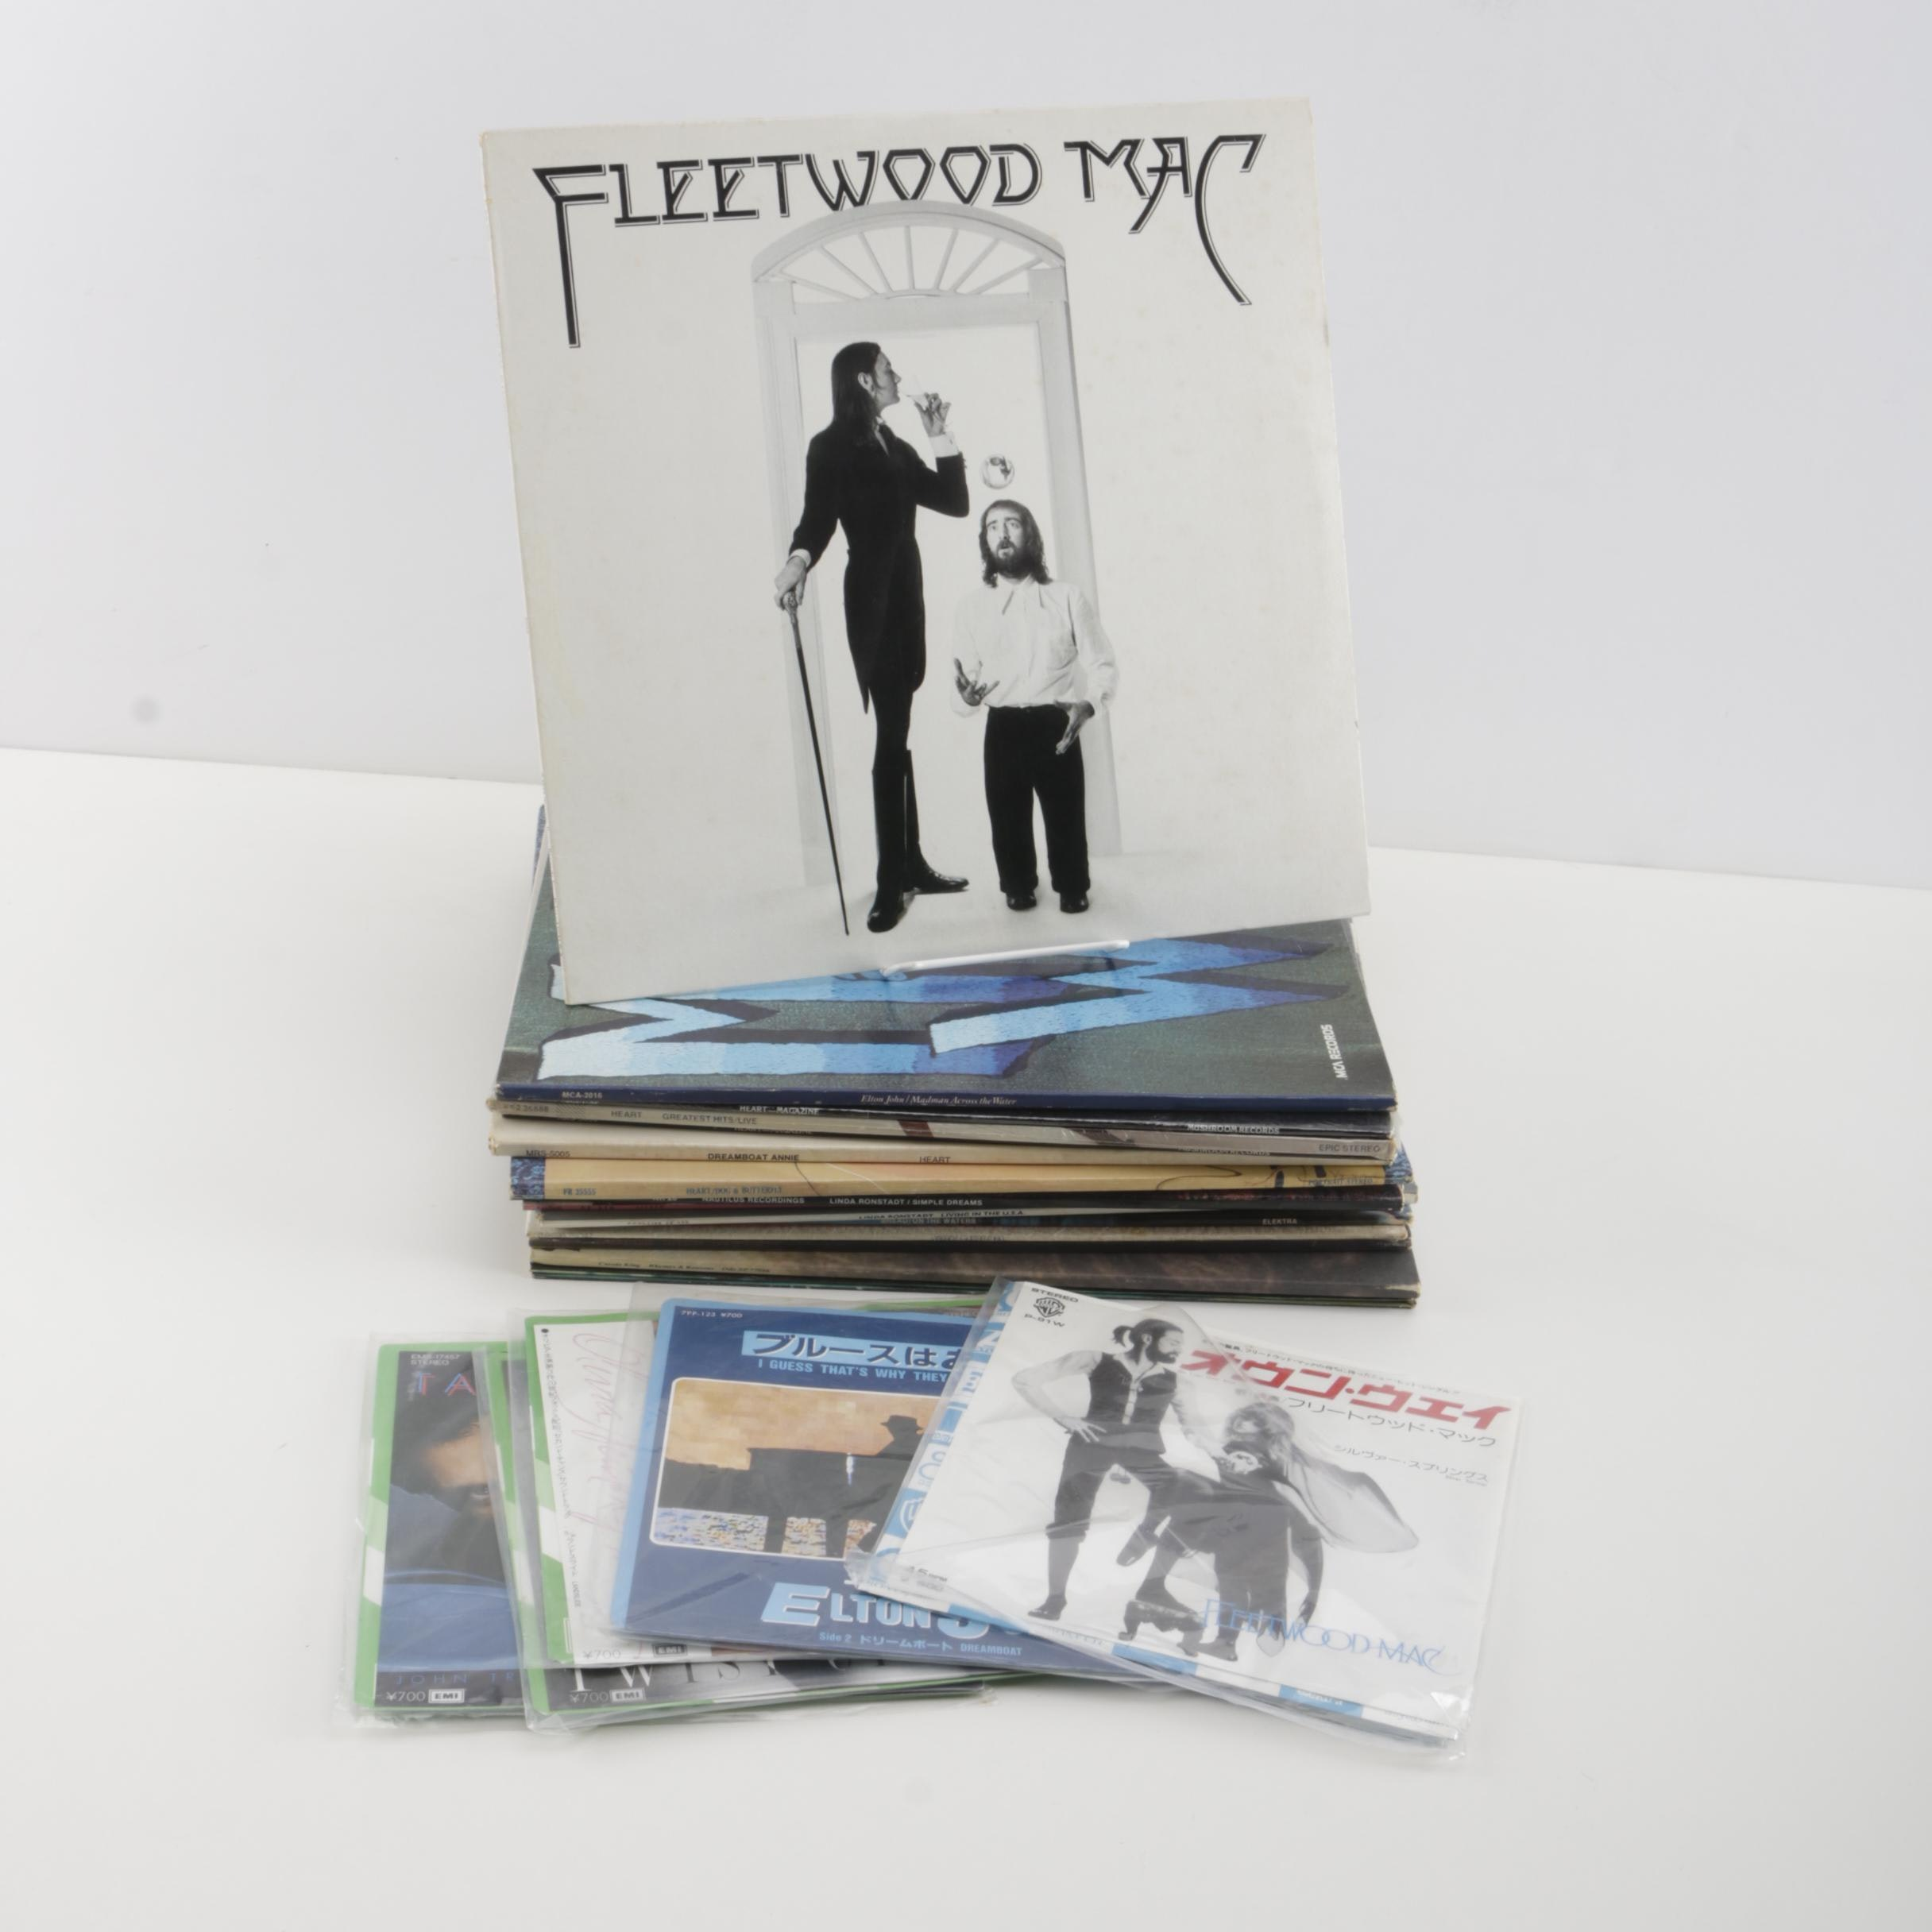 Domestic and Japanese Pressings of Fleetwood Mac, Other Records